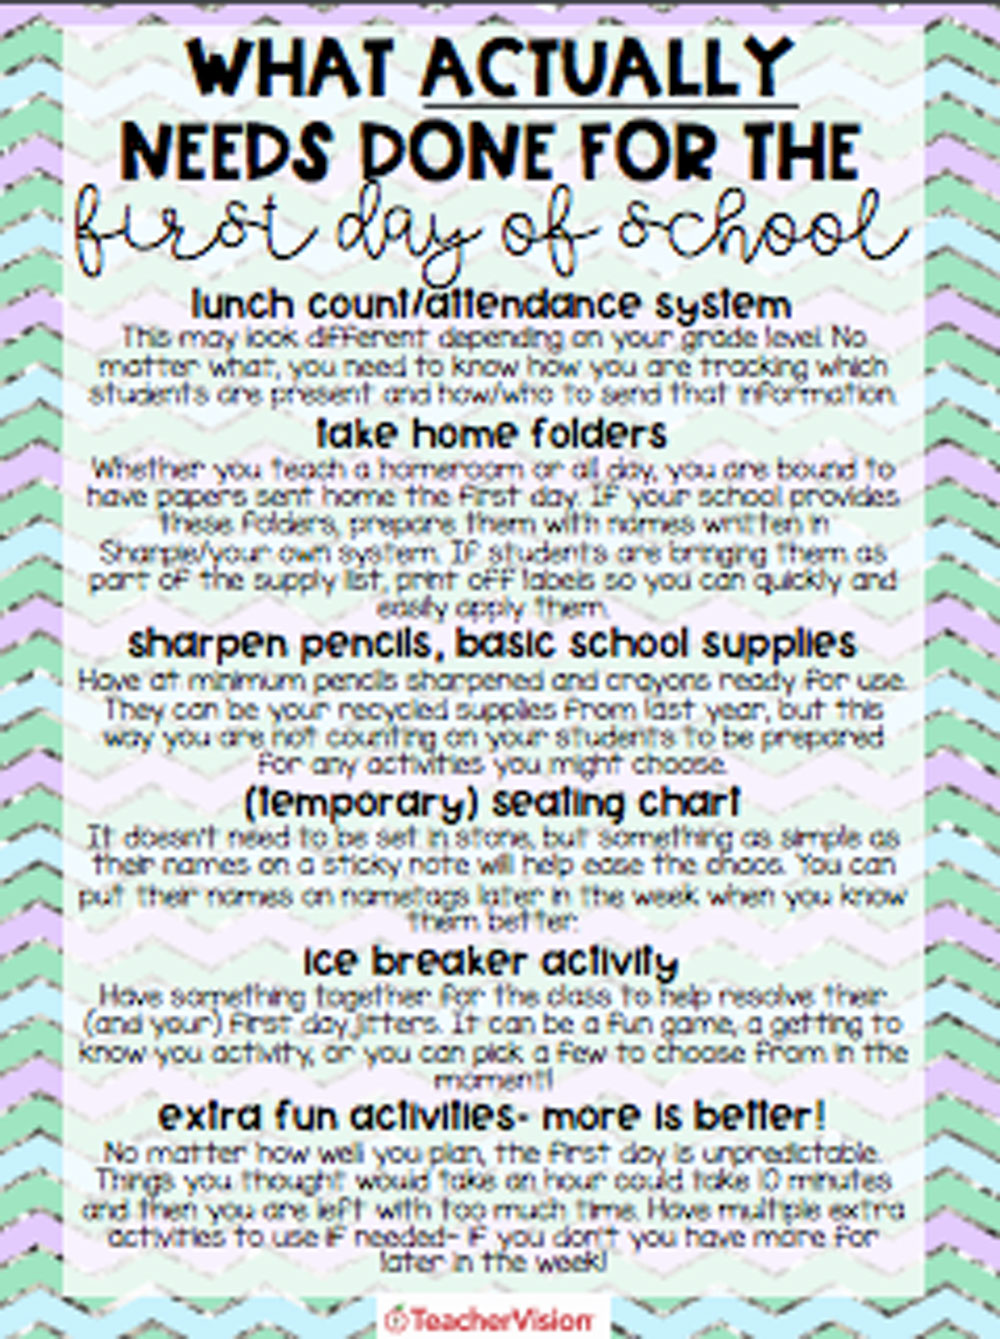 A back to school checklist for elementary teachers